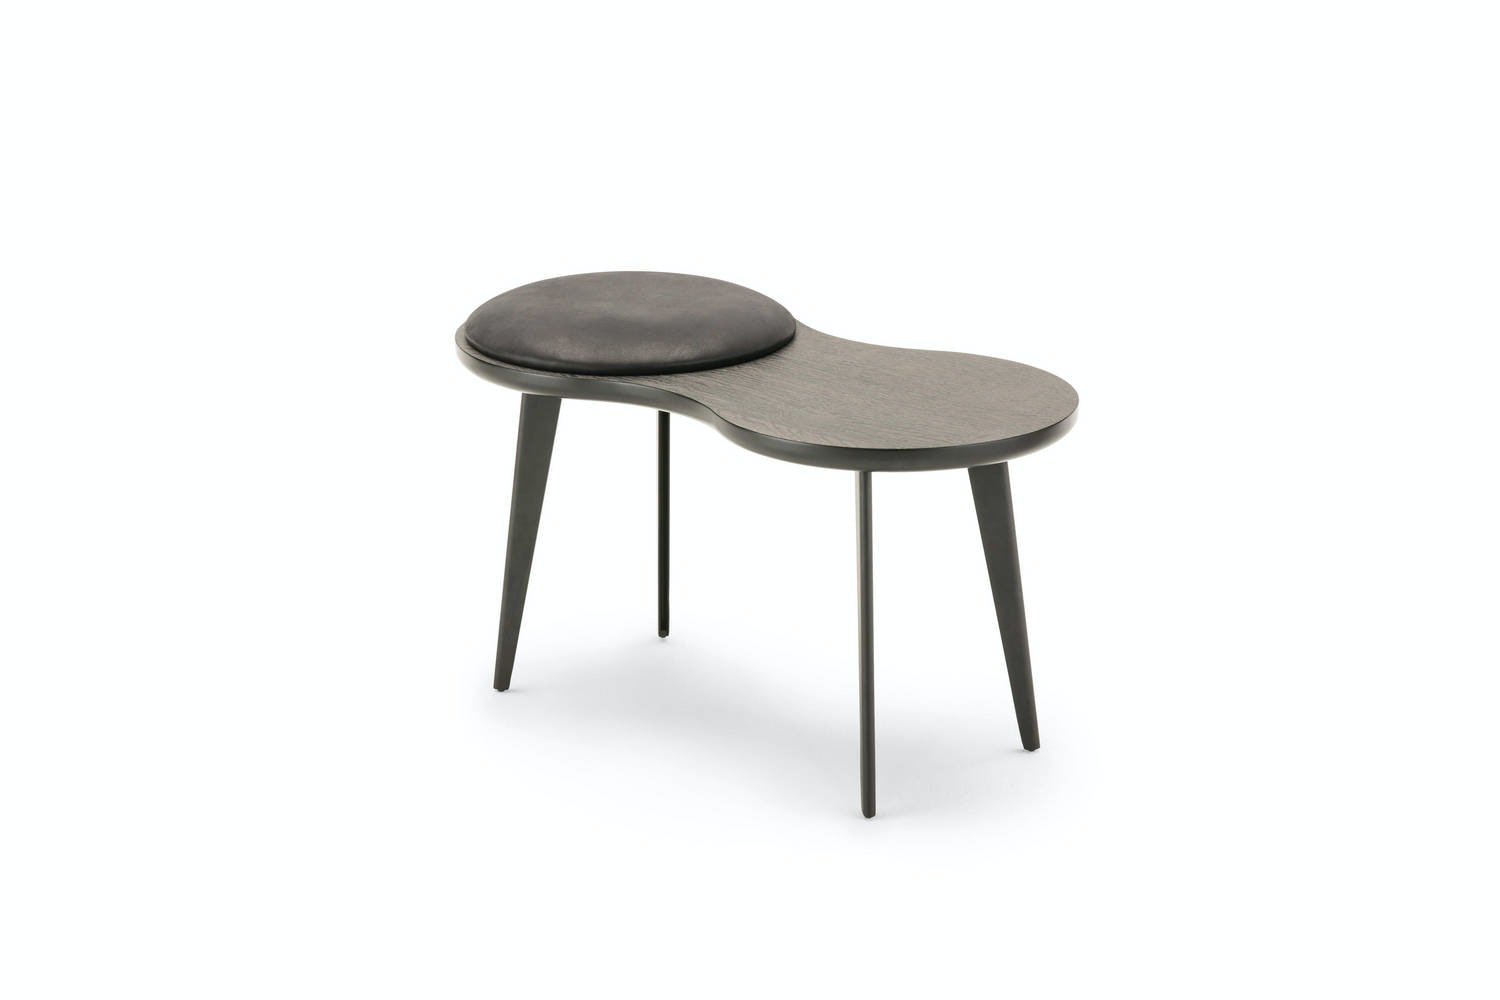 Imago Stool by Mikael Pedersen for Living Divani